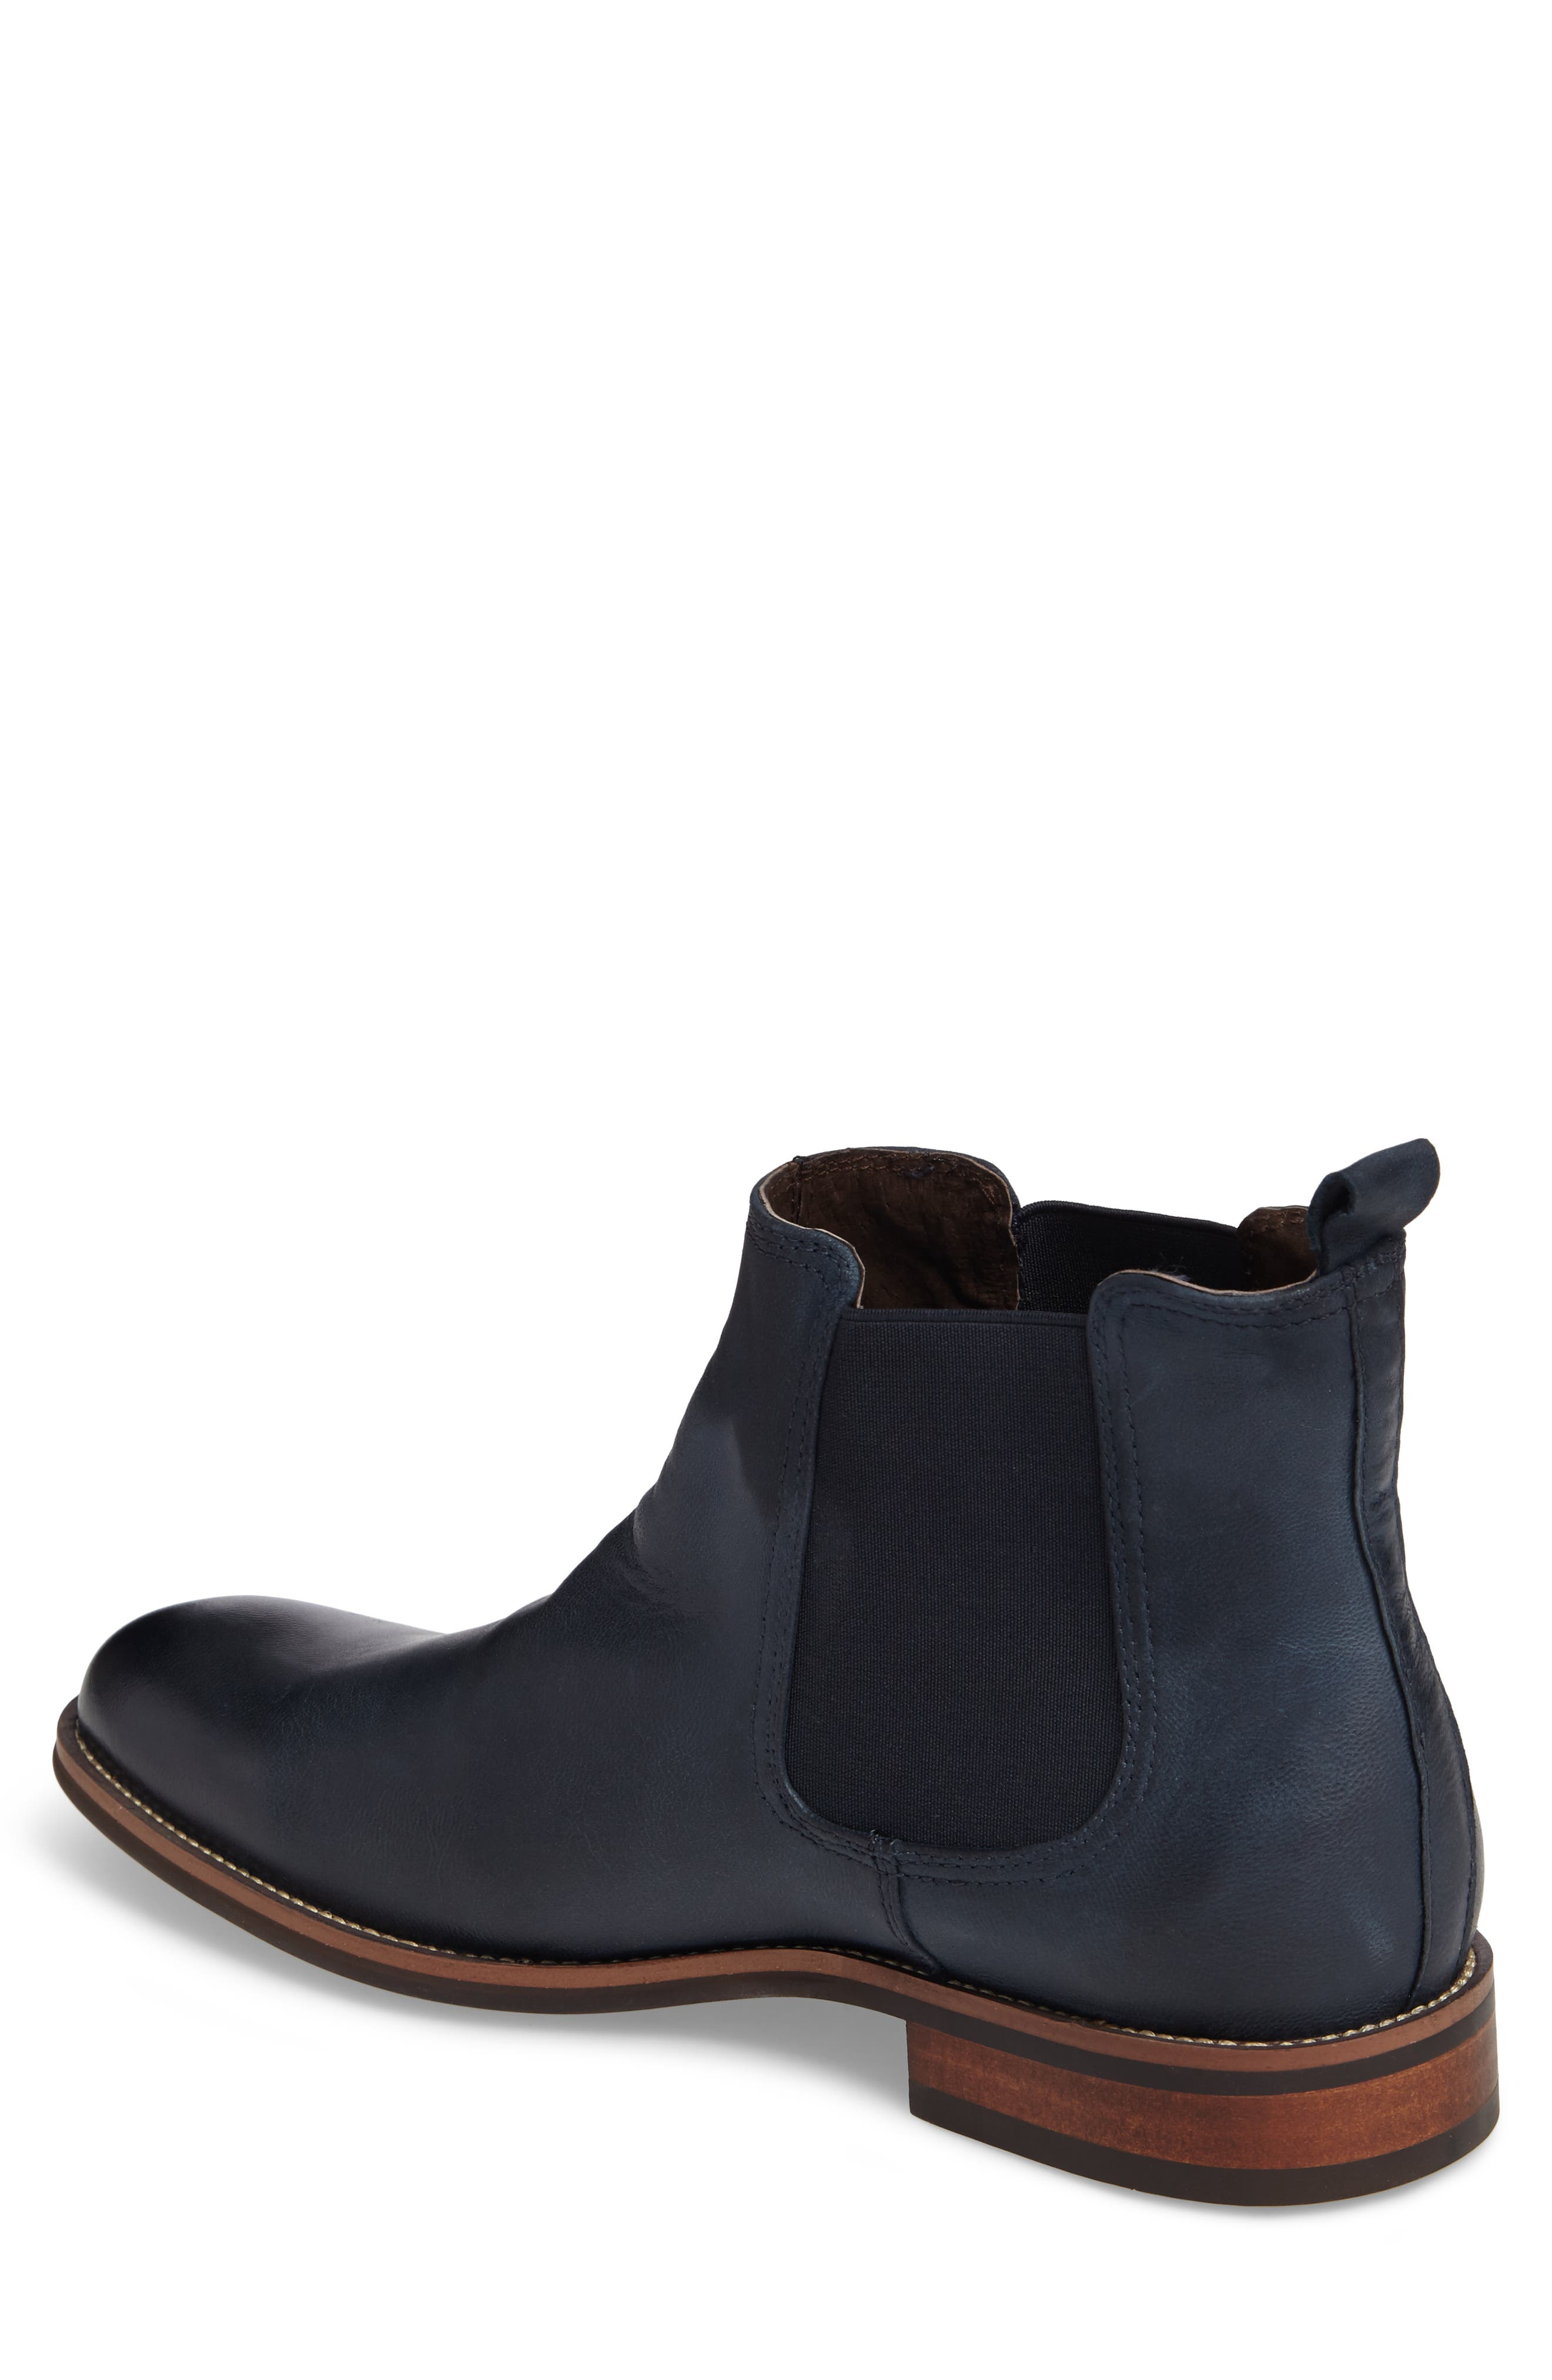 Lawson Chelsea Boot,                             Alternate thumbnail 2, color,                             Navy